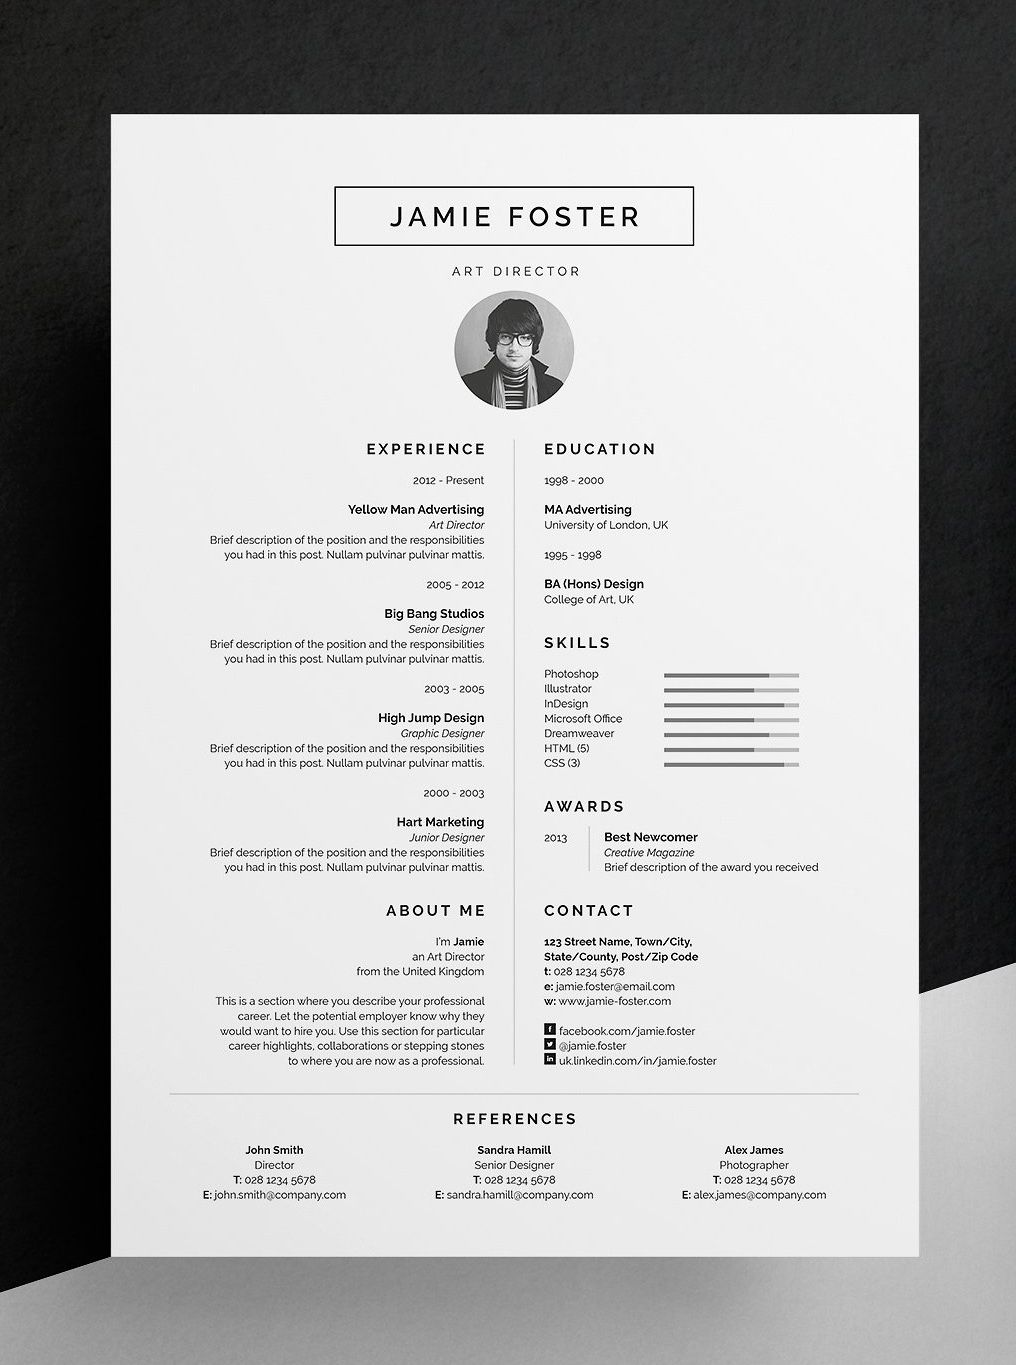 Professional Resume CV and cover letter template A beautiful vertical design with a small photo Including a single page resume cv and cover letter